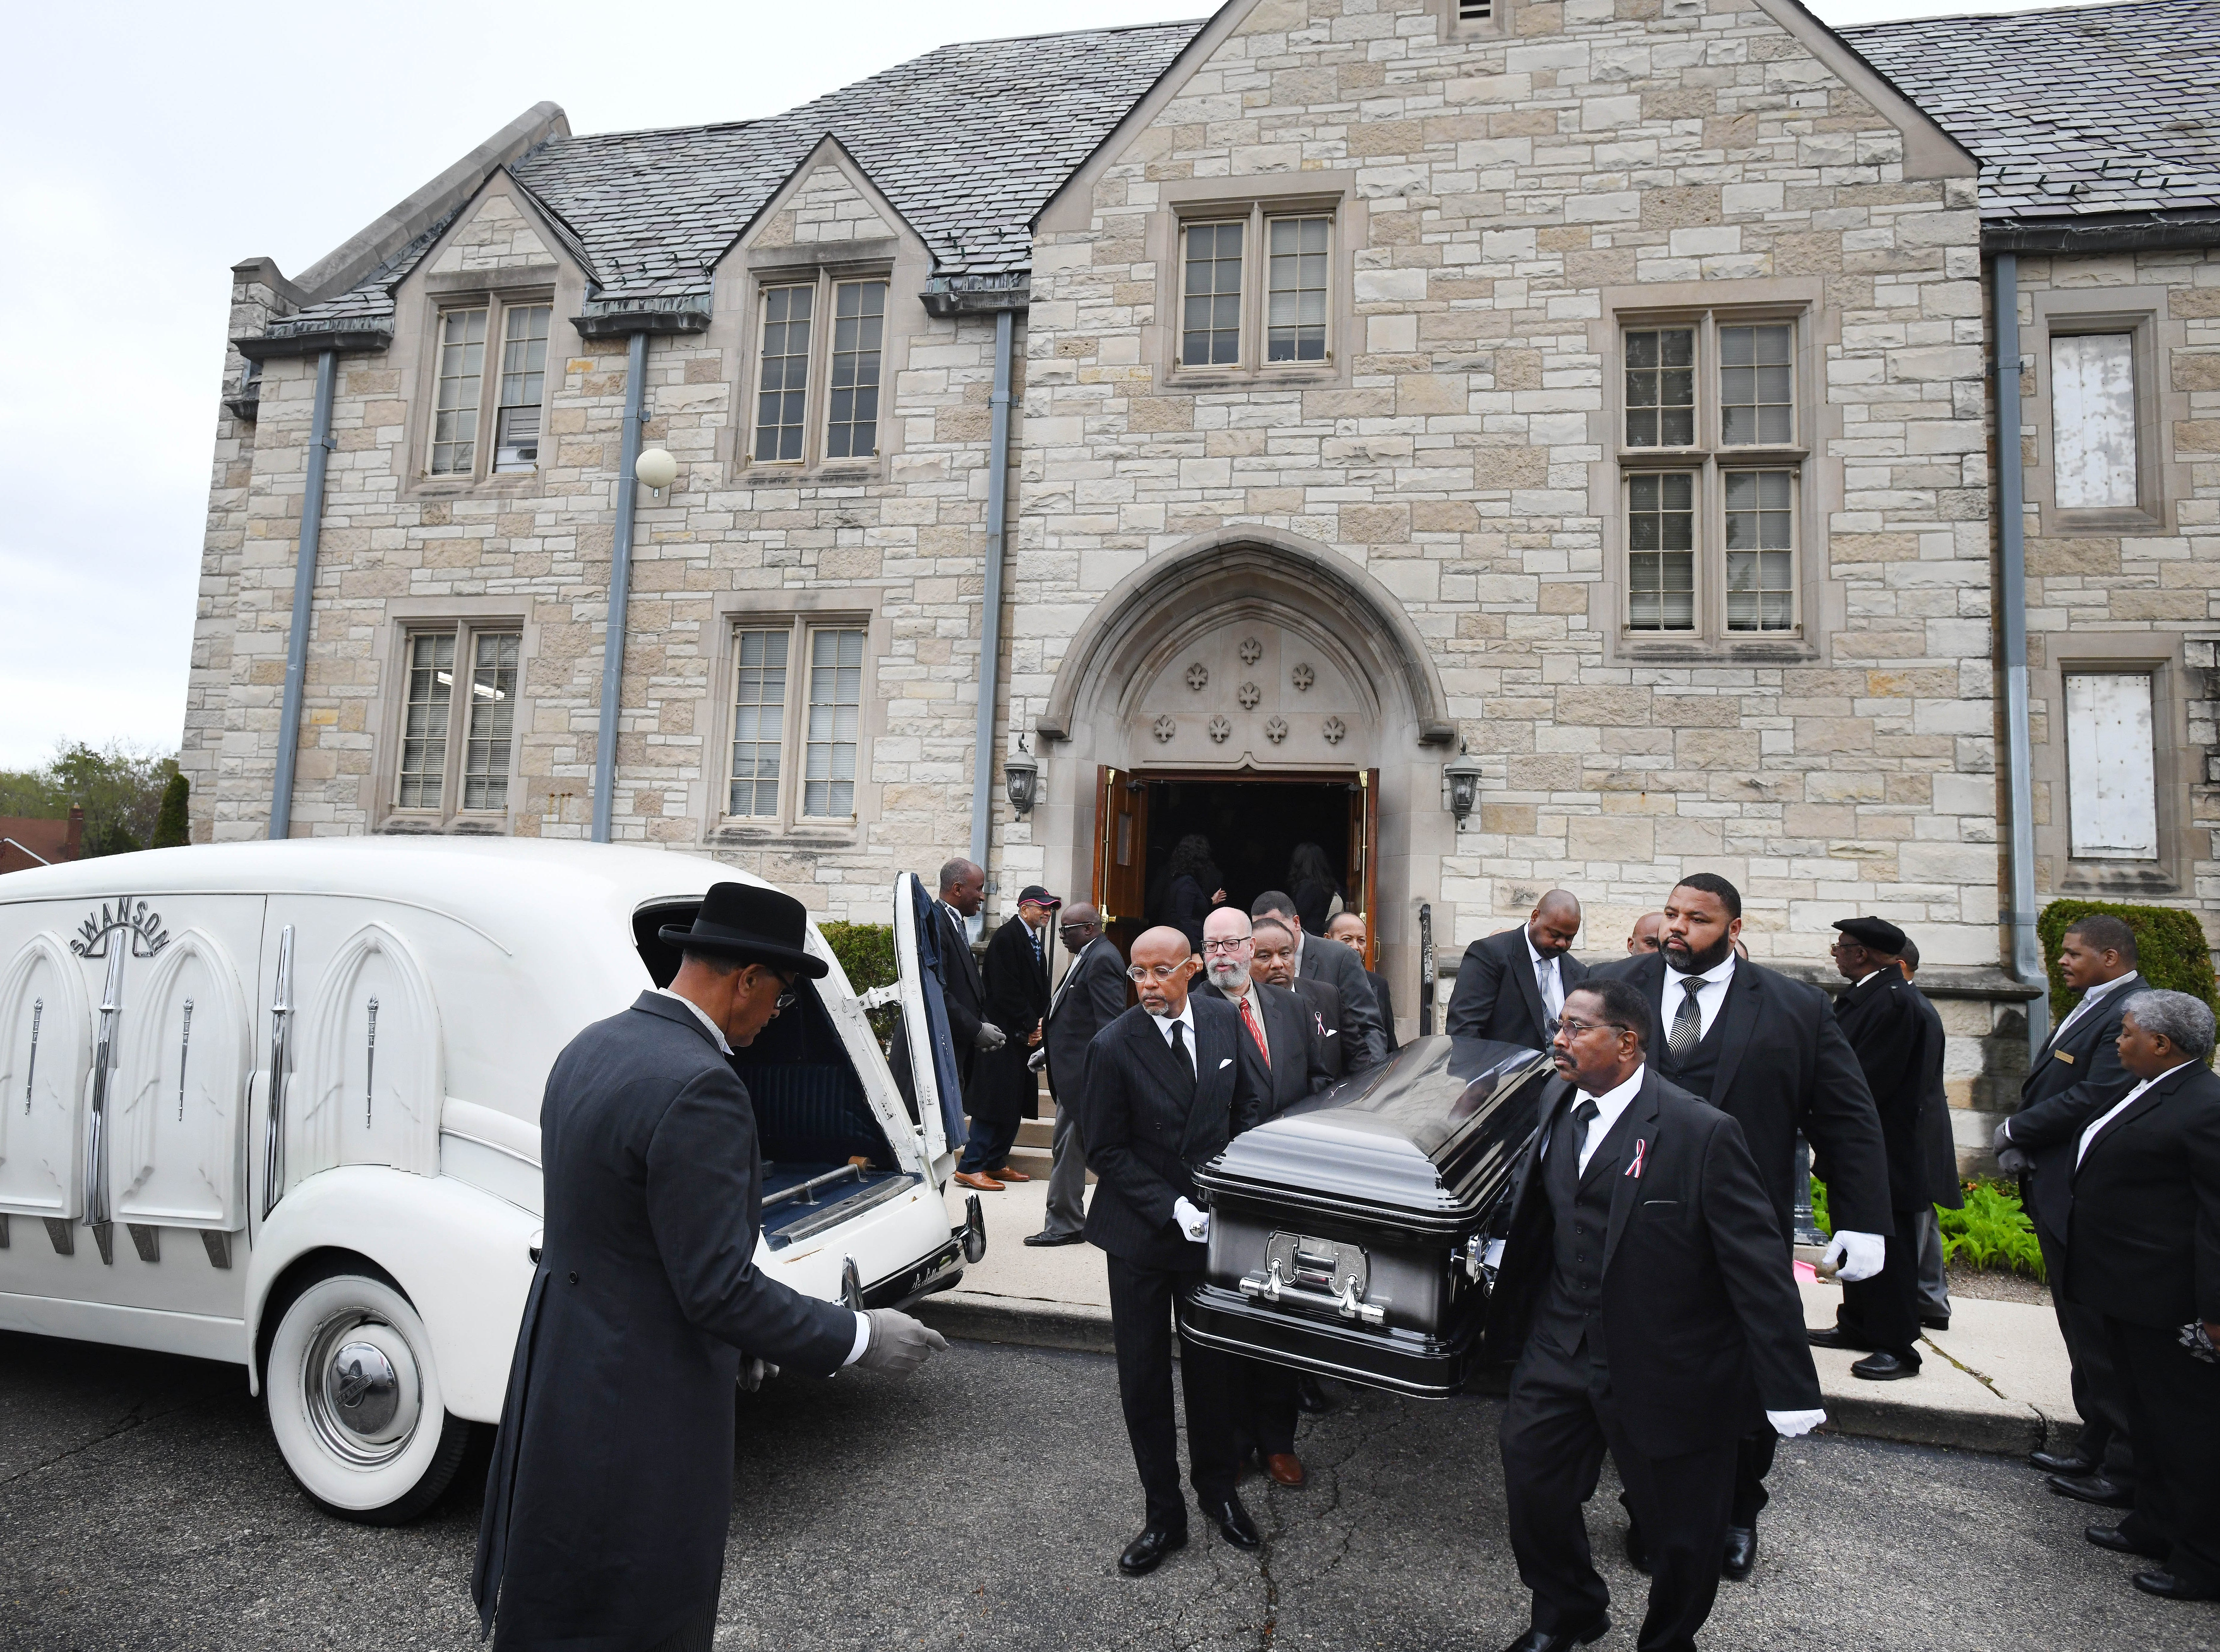 The casket of Judge Damon Keith is taken from Hartford Memorial Baptist church after the funeral.